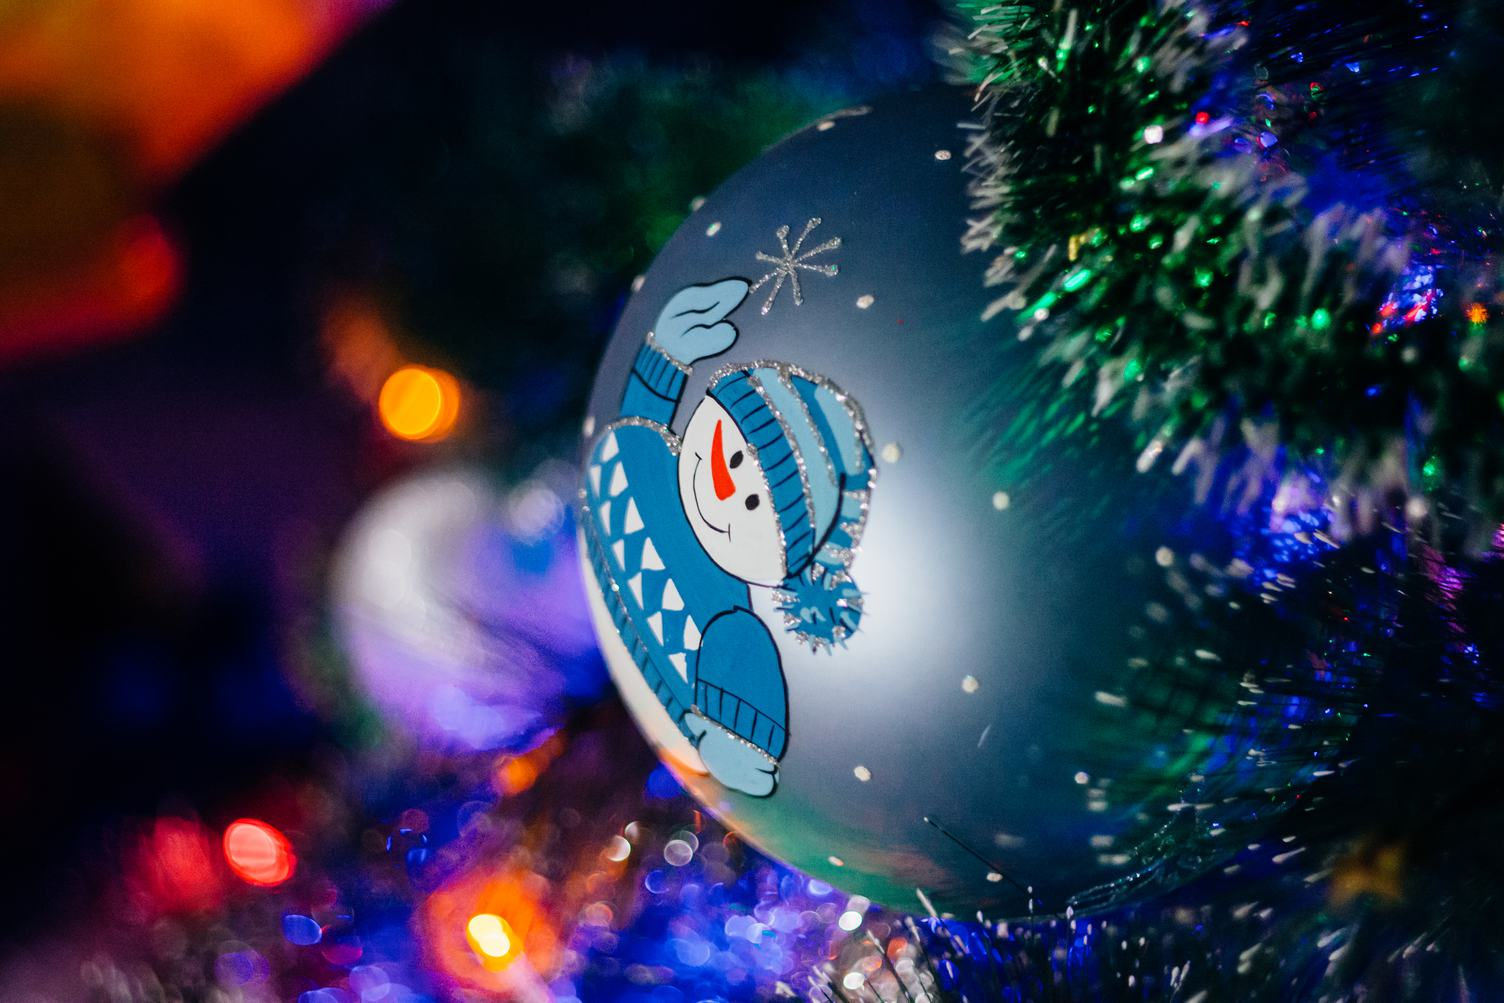 Christmas Tree with Snowman on the Bauble